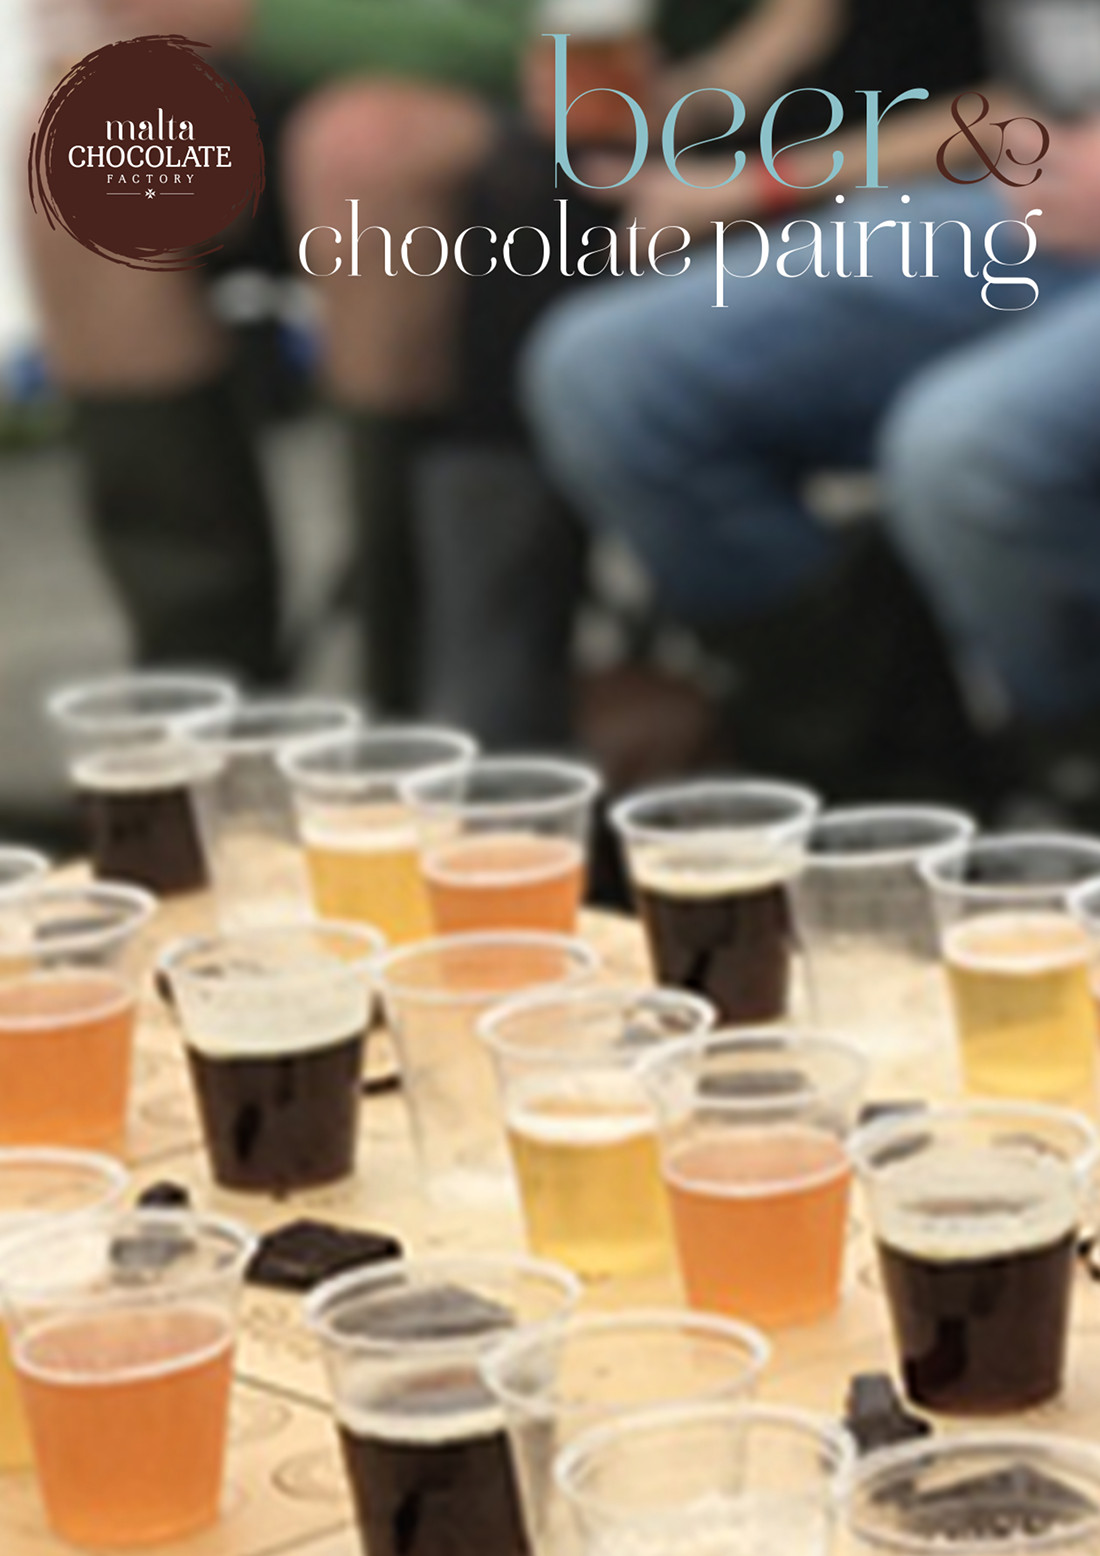 Beer and Chocolate Pairing flyer